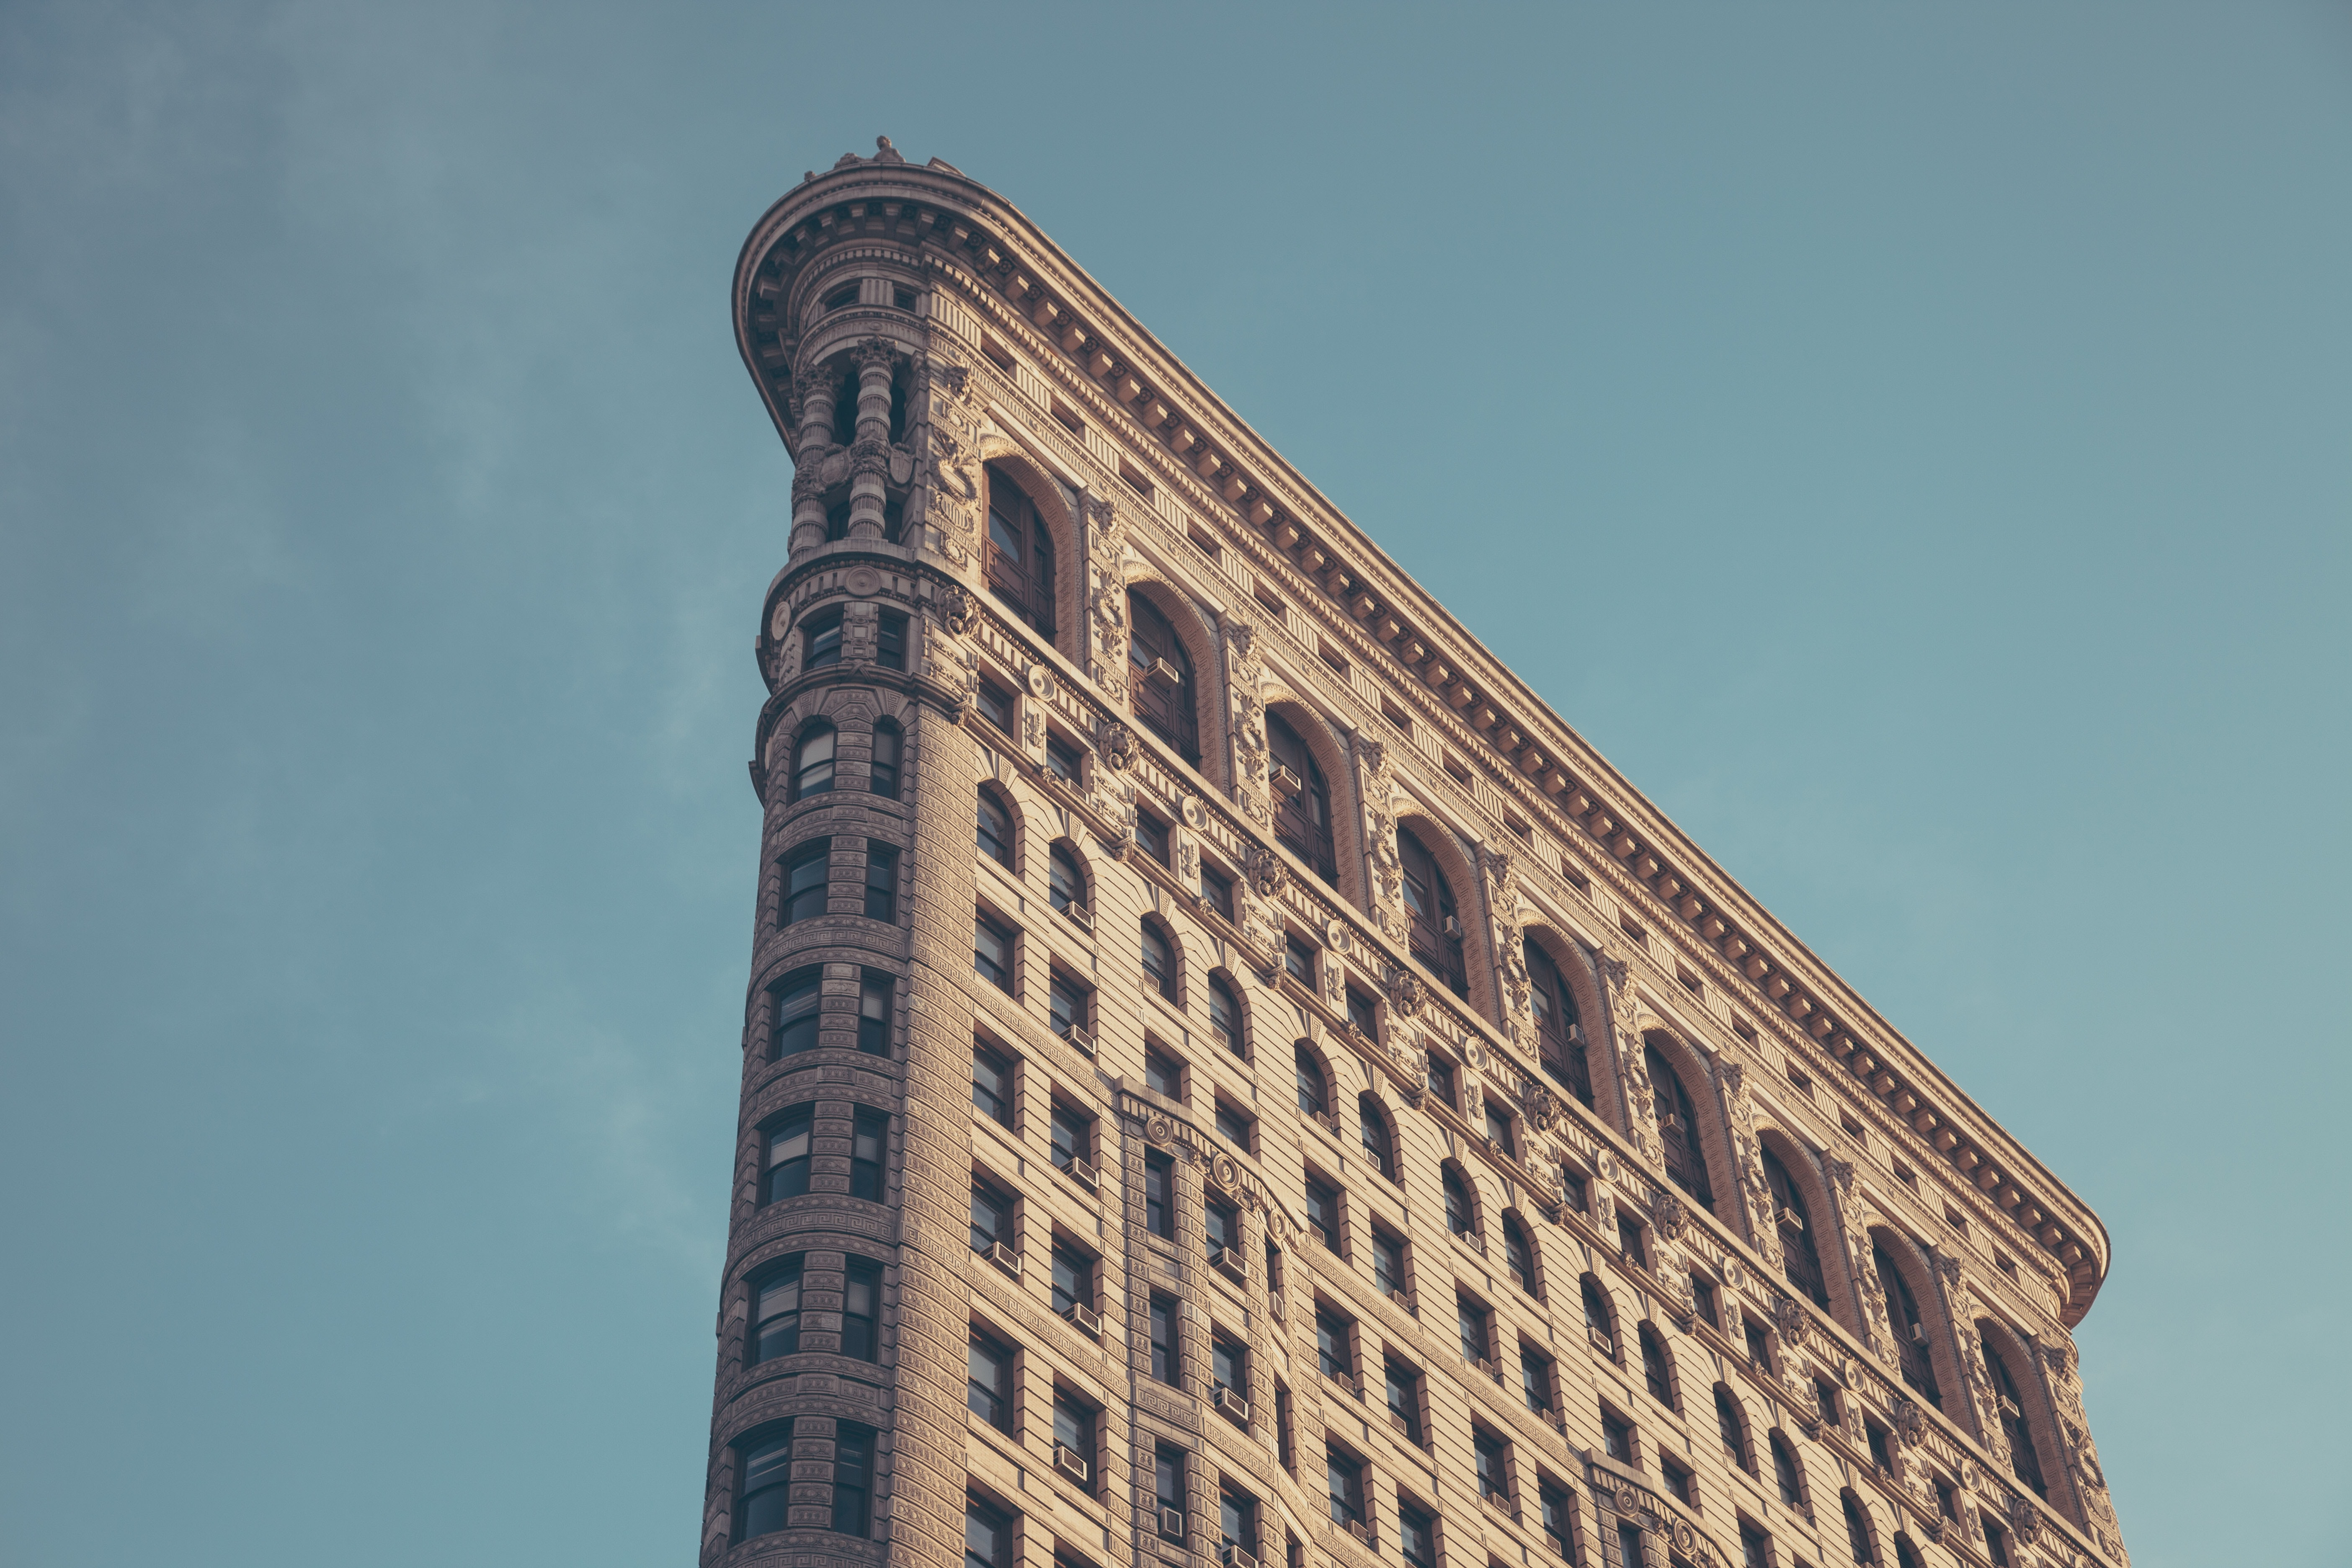 The side of the Flatiron Building in New York against a blue sky